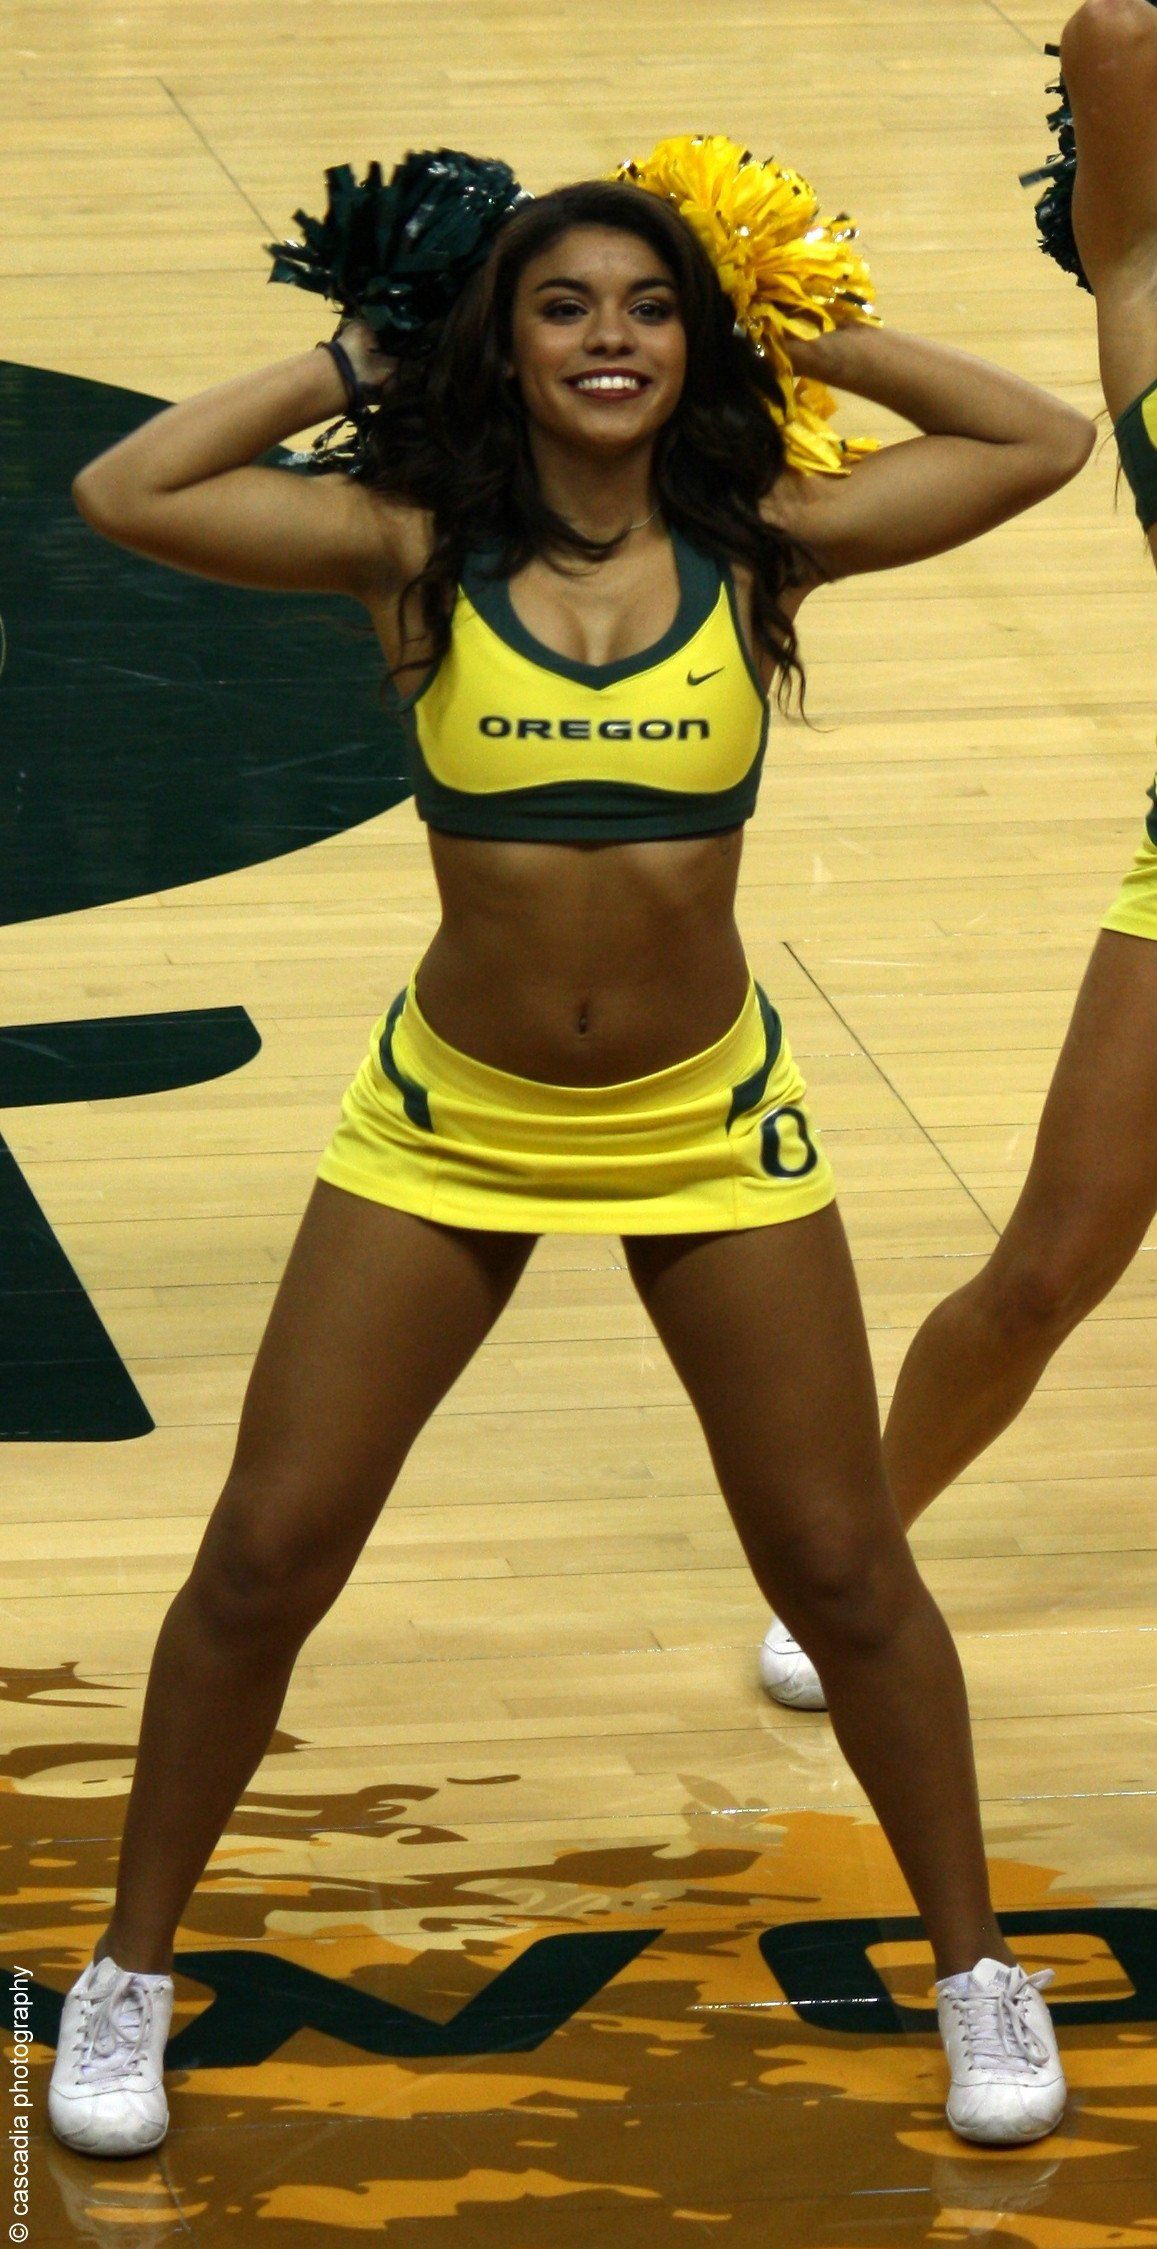 Really. And Oregon ducks cheerleader porn quite good